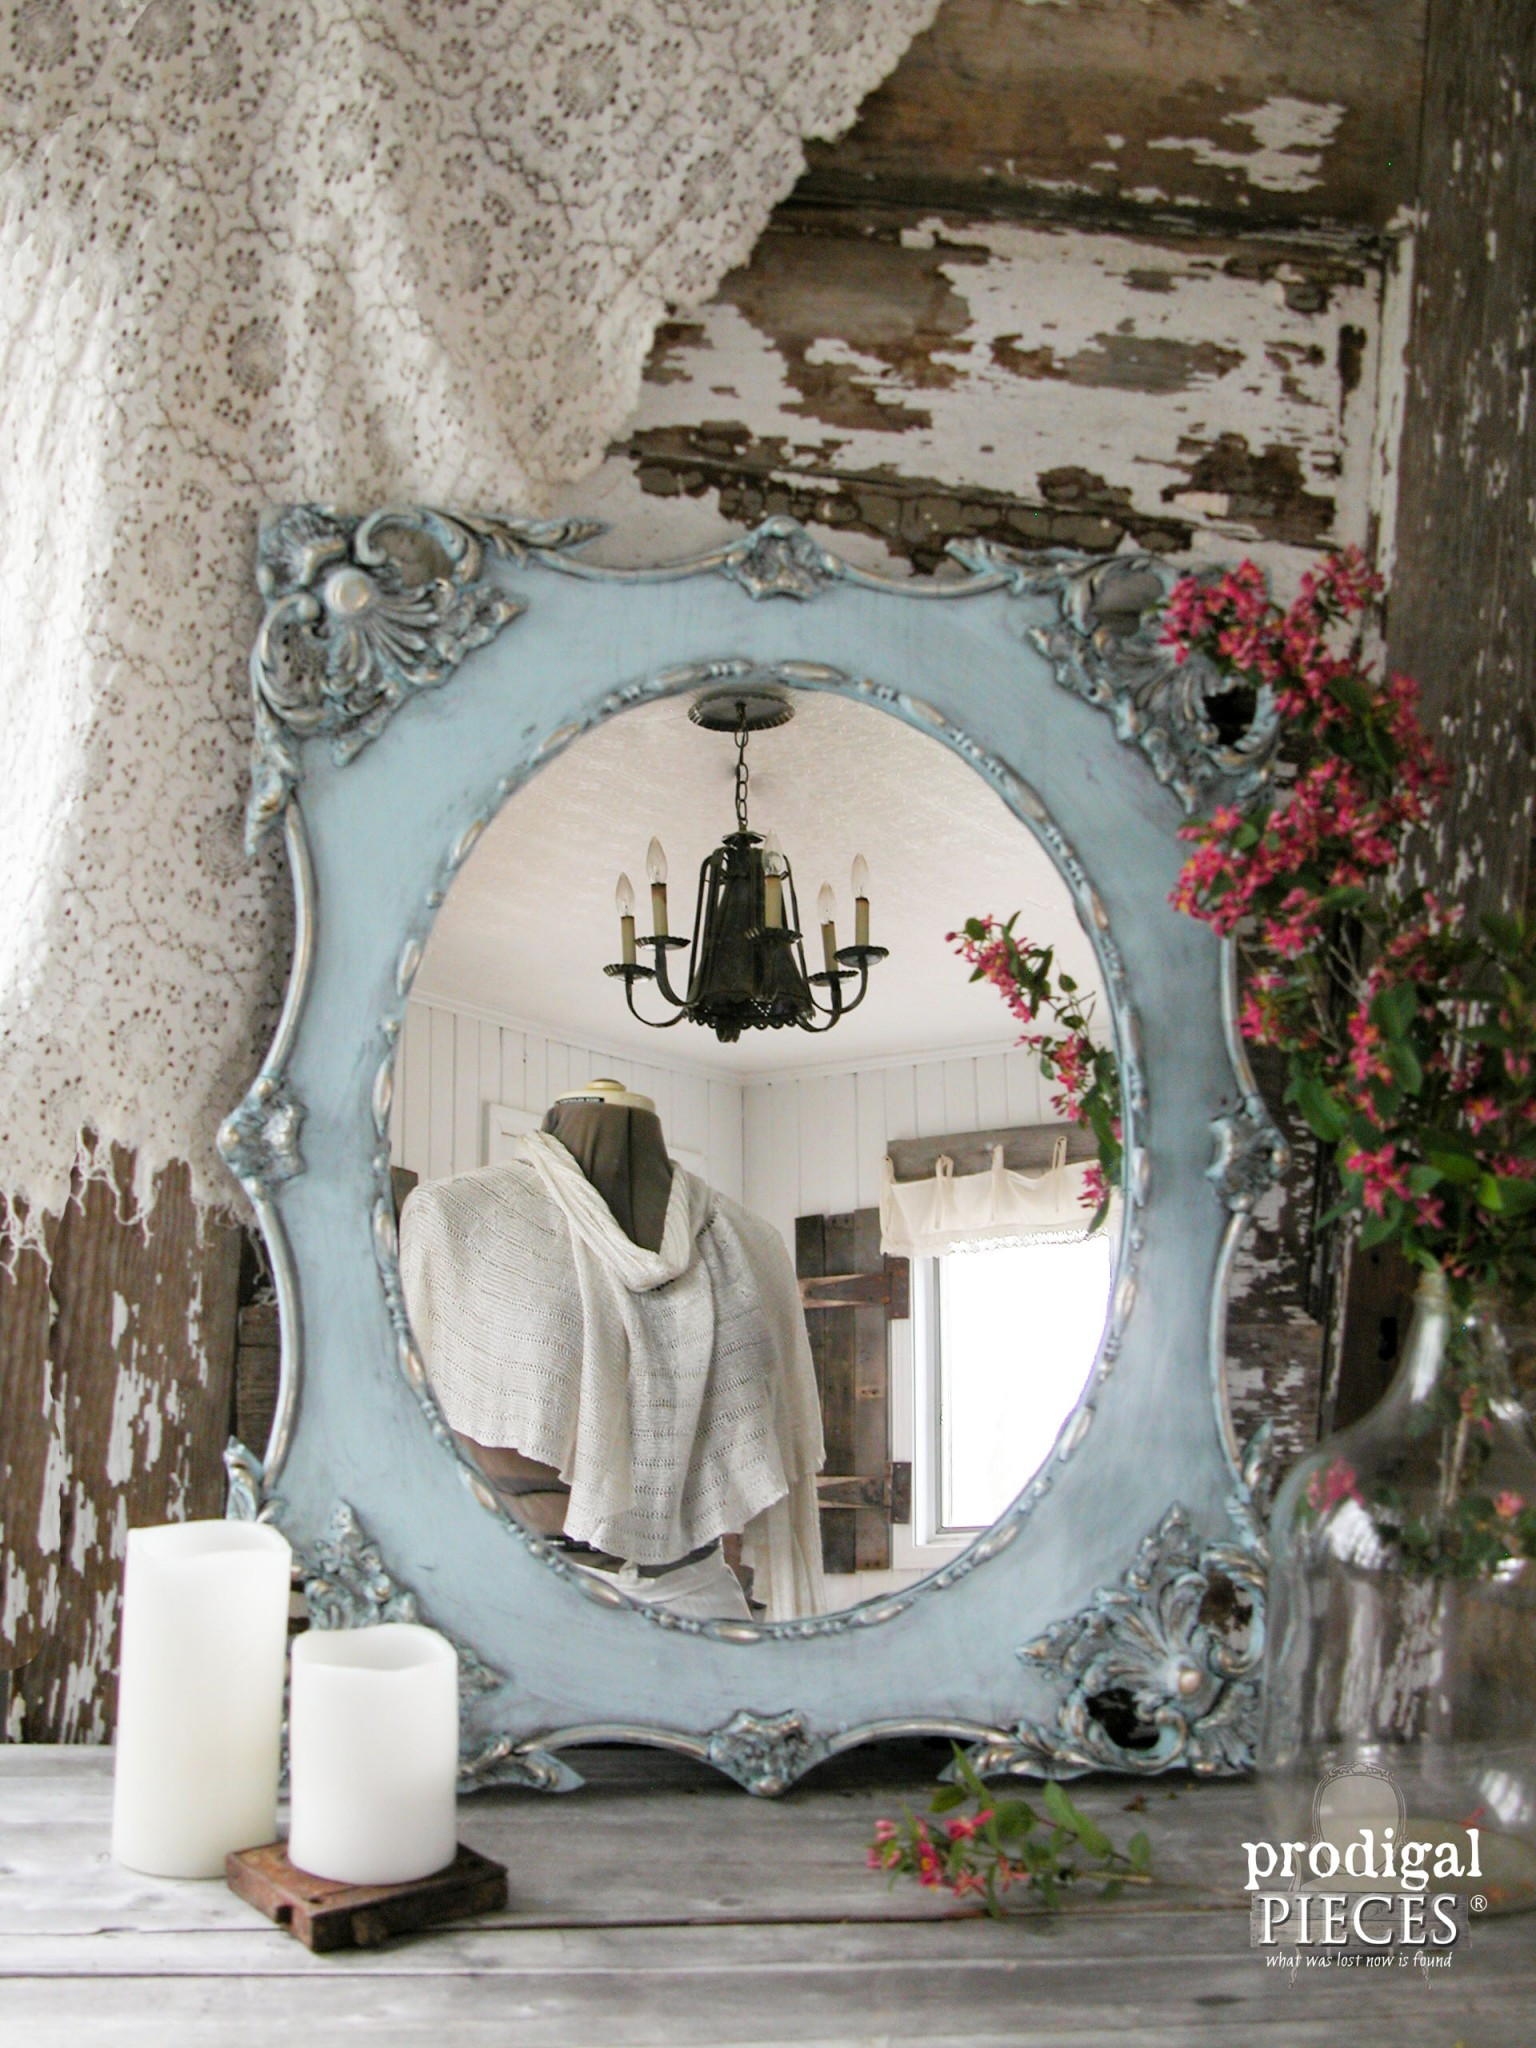 Ornate Vintage Mirror with Aged Finish Tutorial by Prodigal Pieces | www.prodigalpieces.com